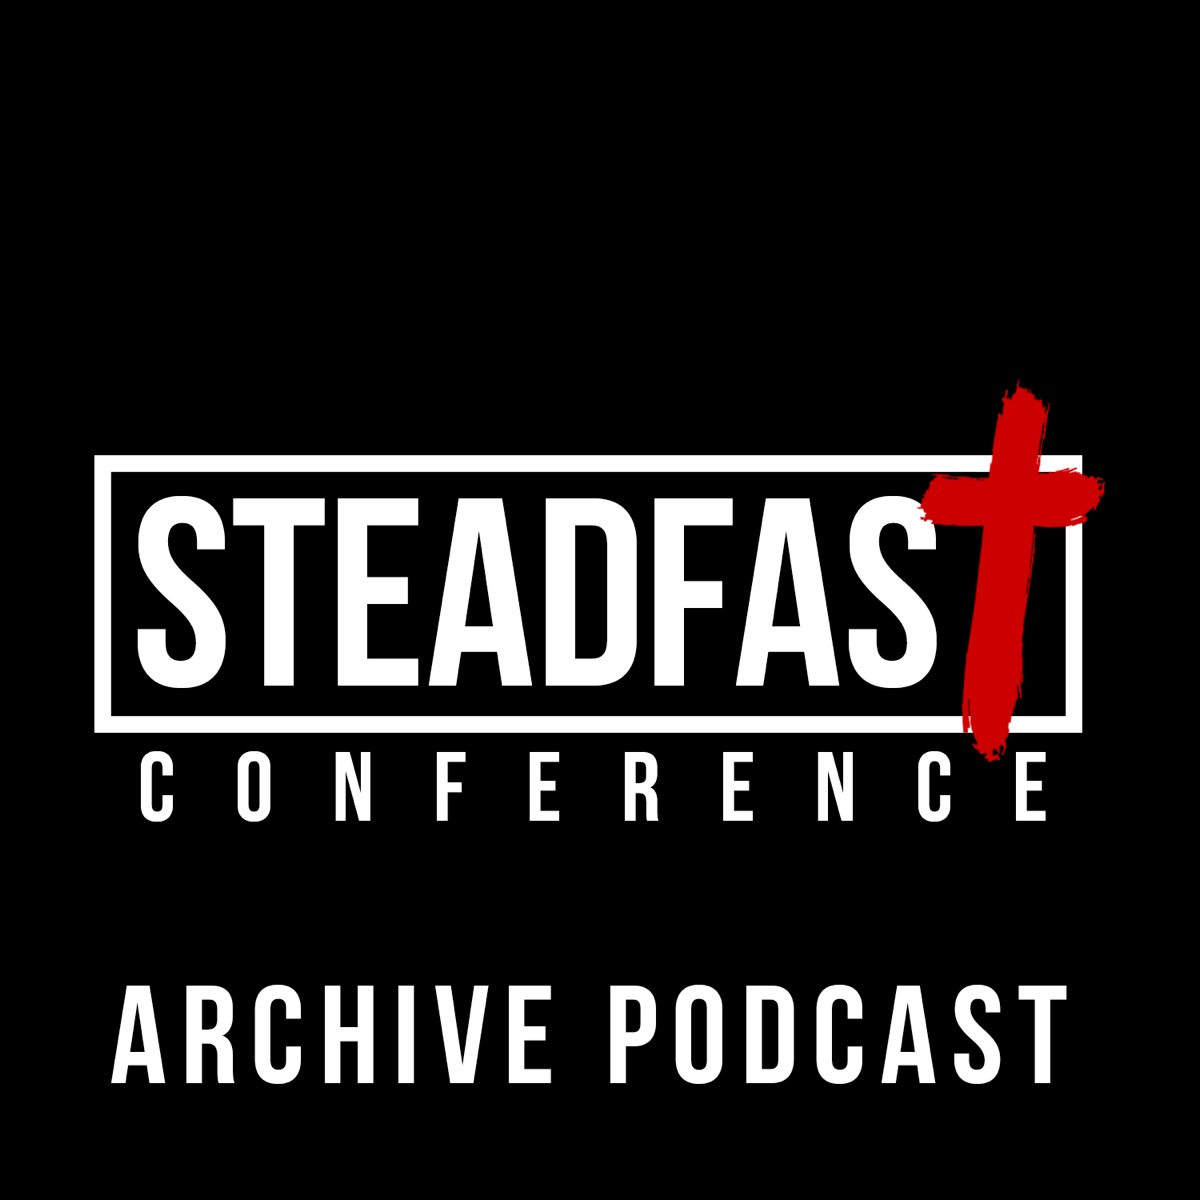 Steadfast Bible Conference Podcast